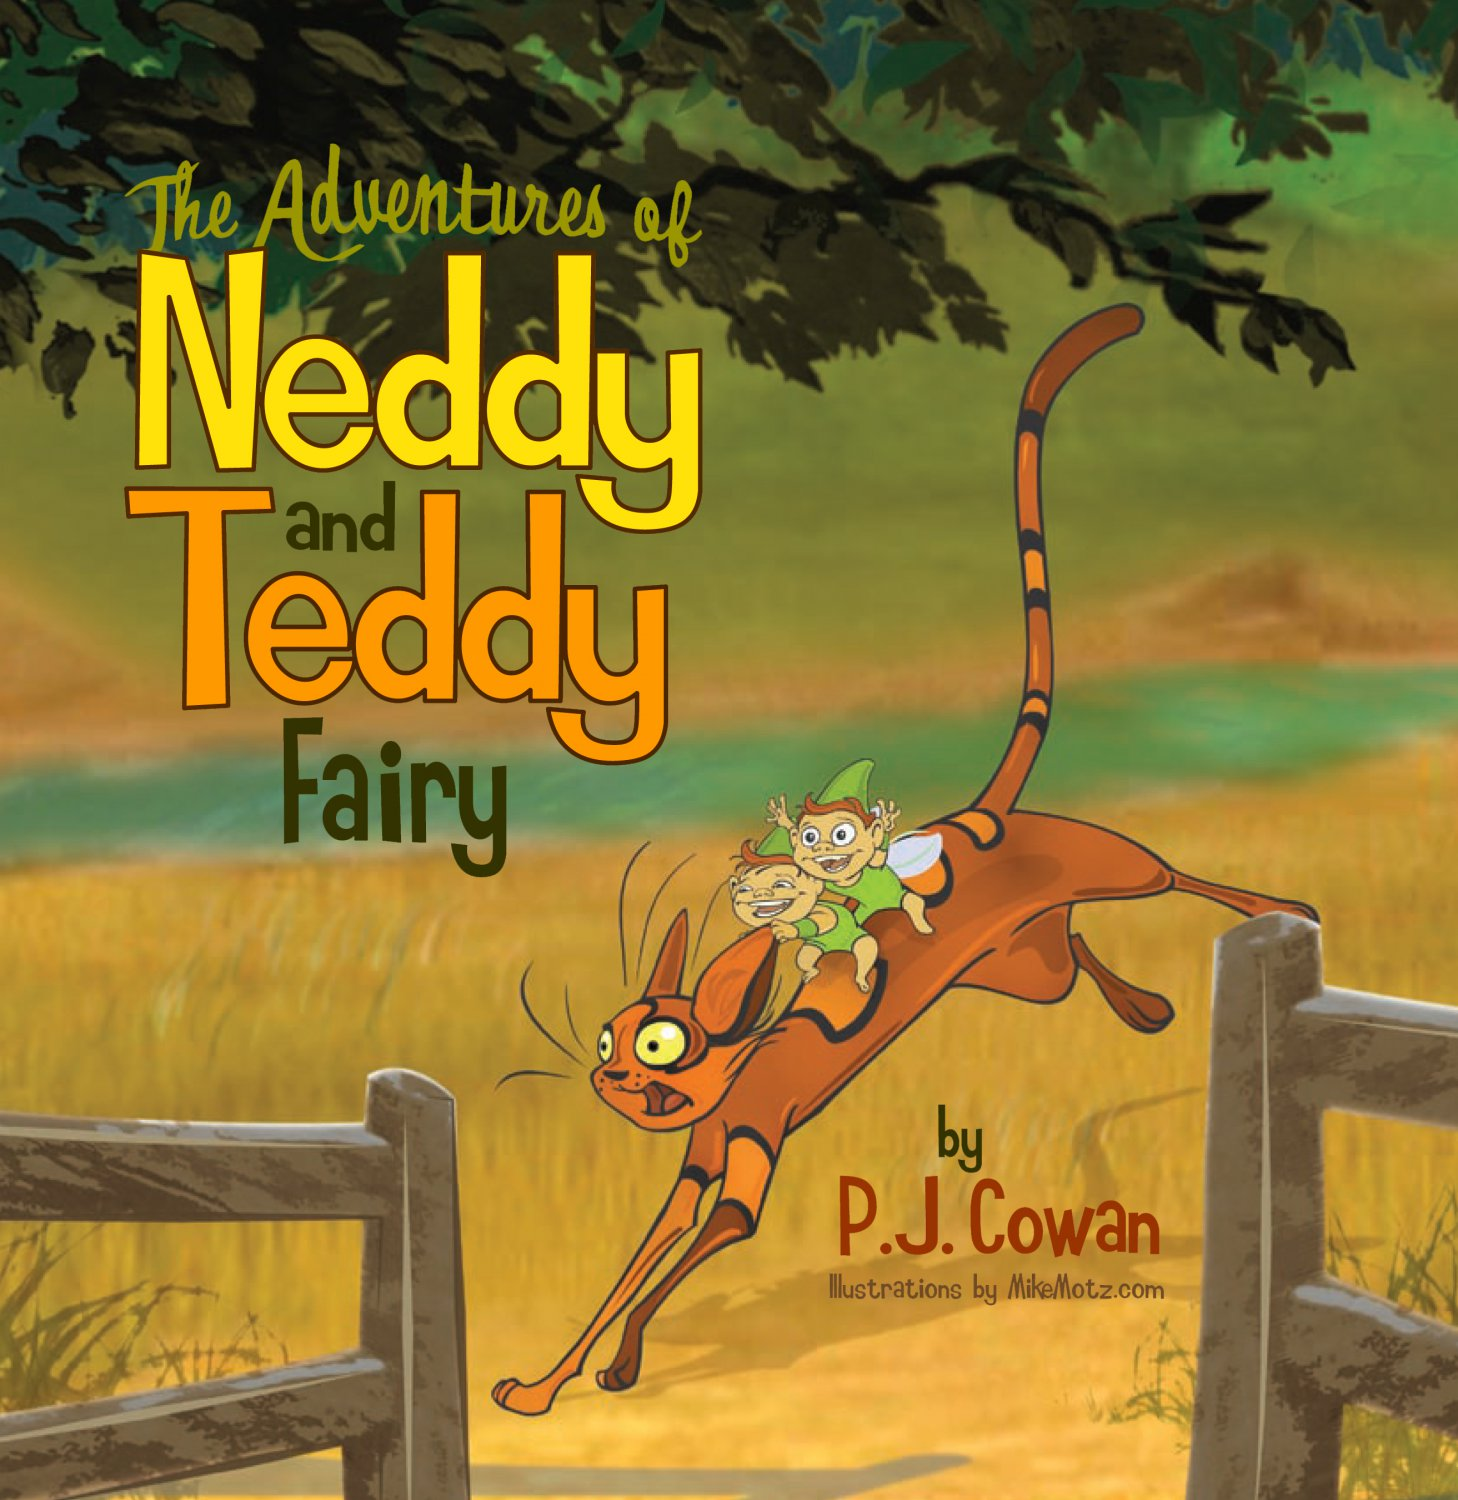 THE ADVENTURES OF NEDDY AND TEDDY FAIRY